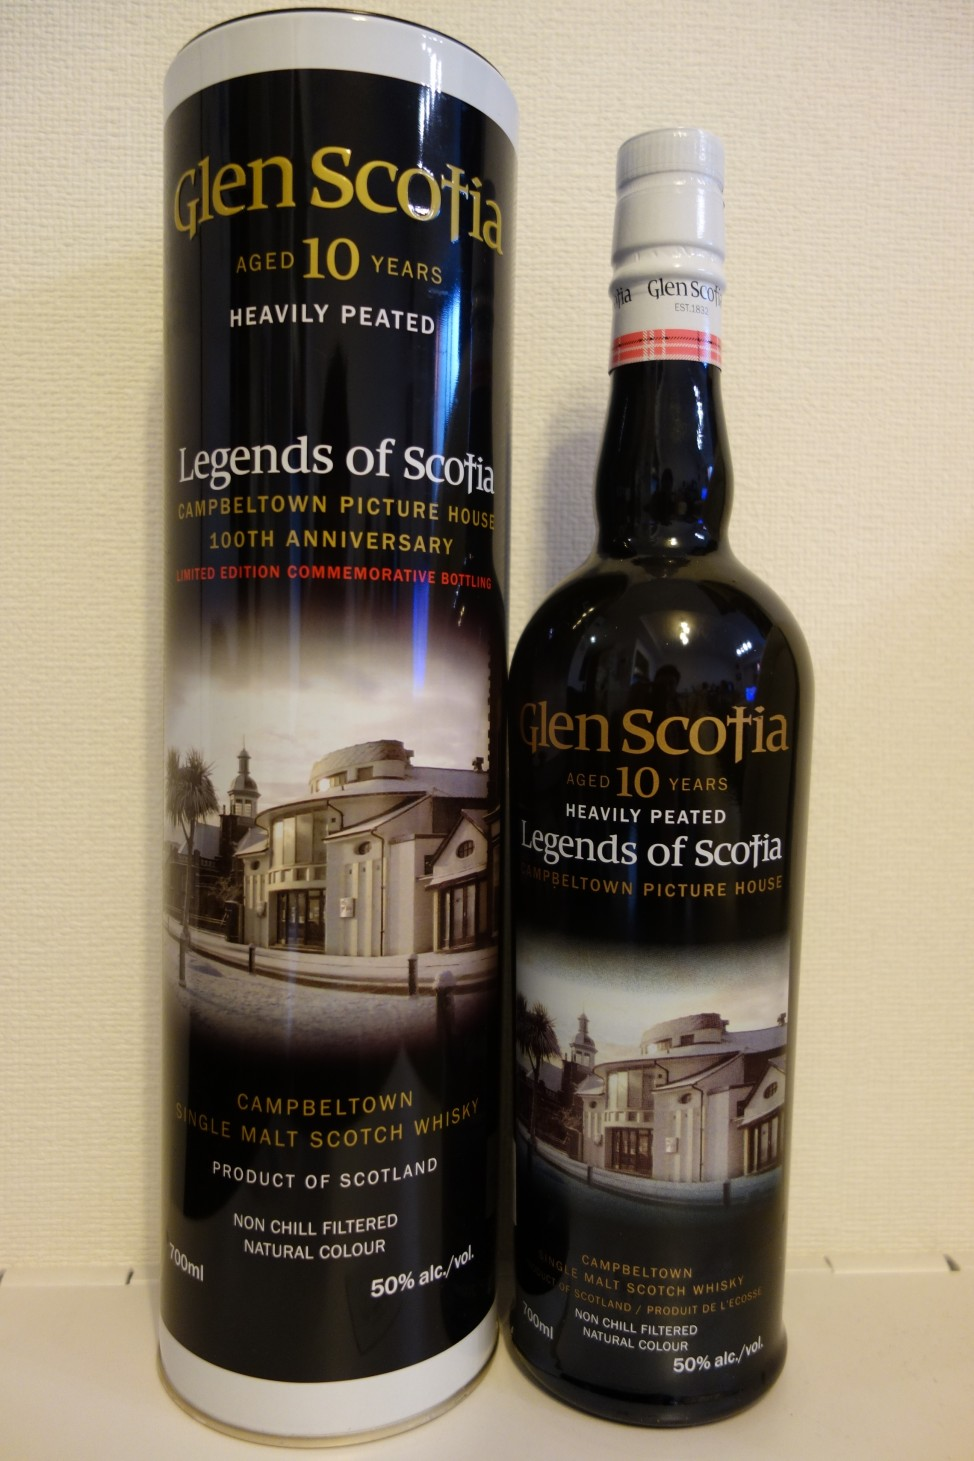 "GLENSCOTIA 10yo OB ""Legends of Scotia"" Campbeltown Picture House 100th Anniversary"